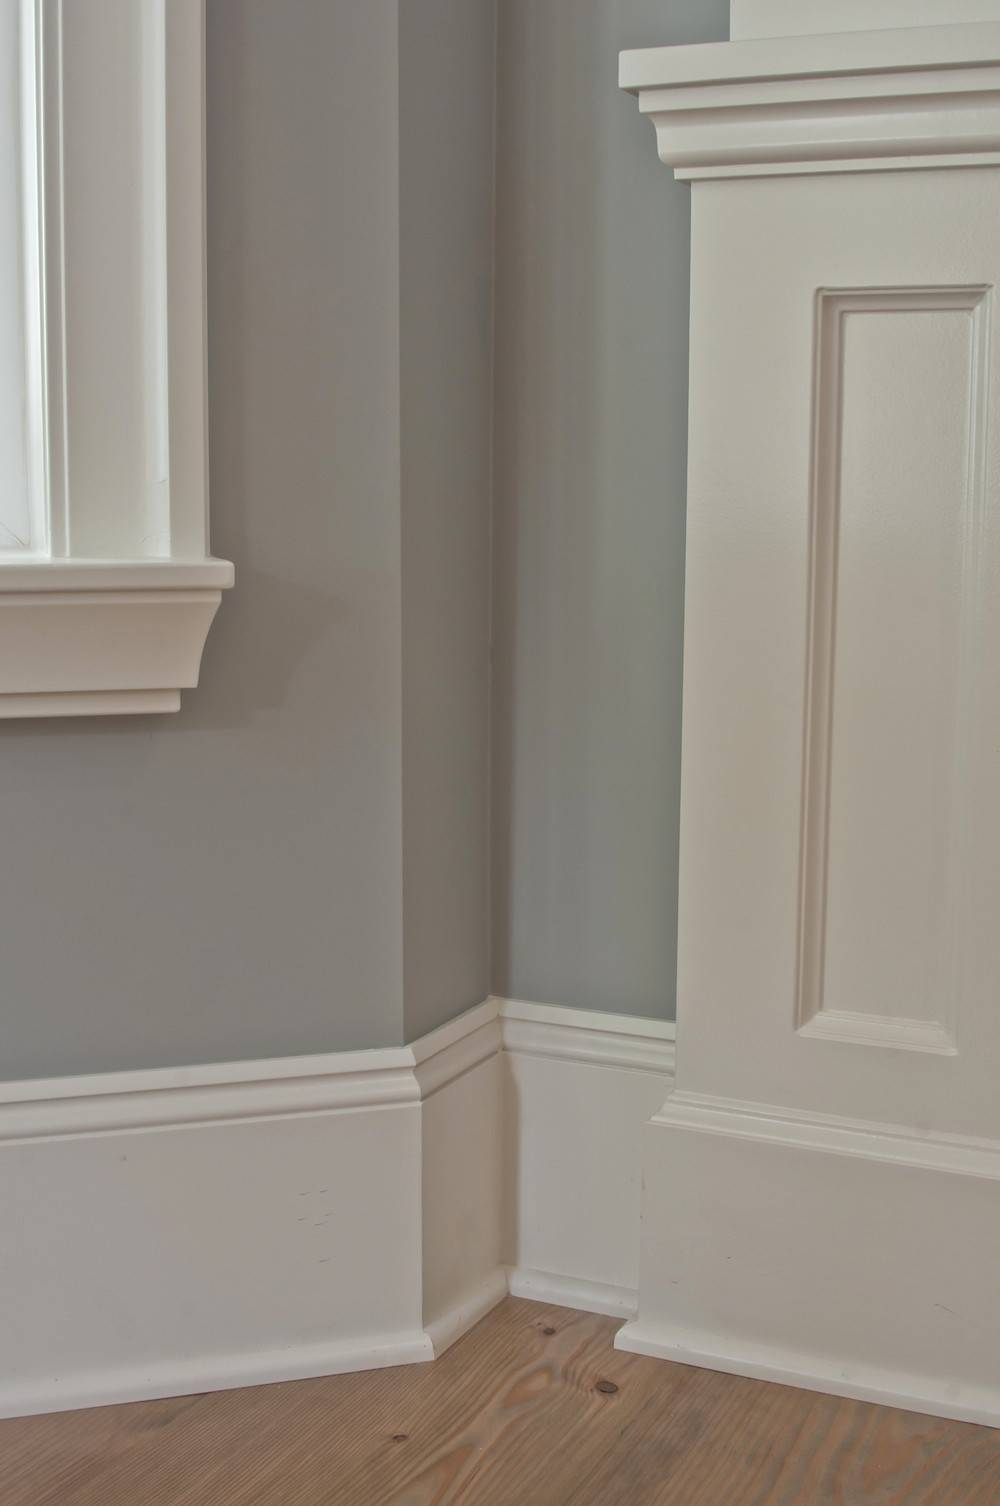 Benjamin Moore White Dove Trim Walls Painted Gabe Jenny Homes,Good Plants To Grow Indoors In Winter